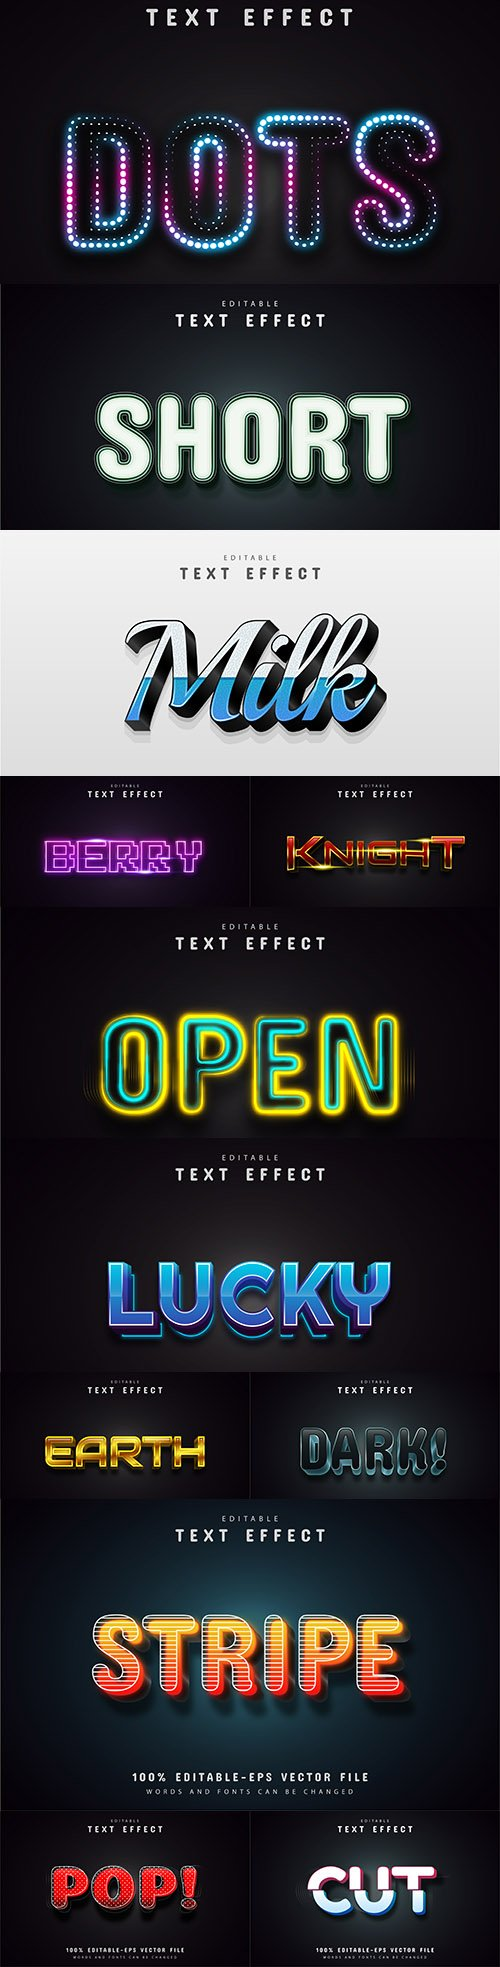 Editable font and 3d effect text design collection illustration 55